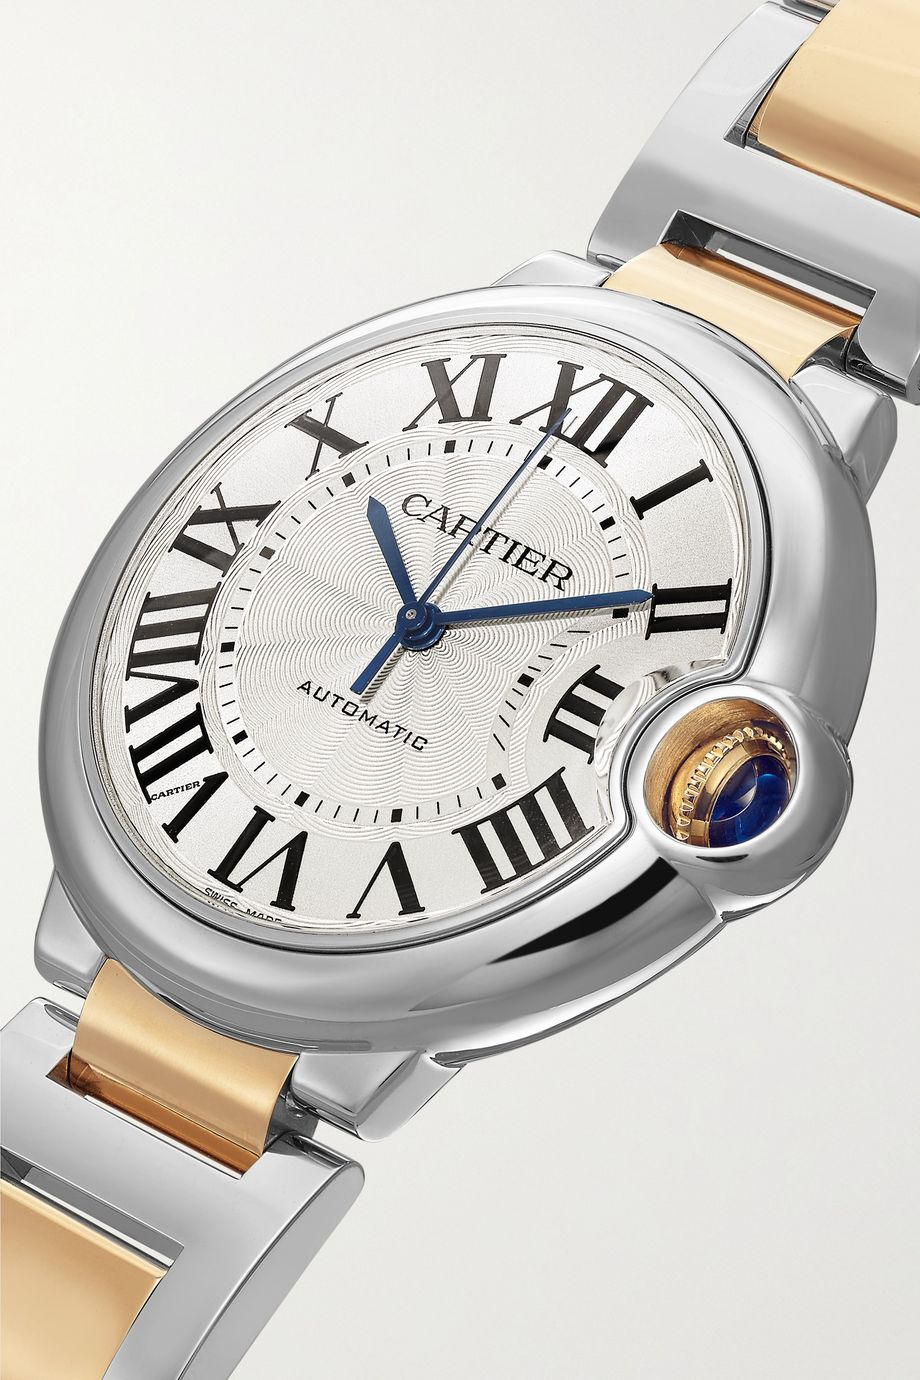 Cartier Ballon Bleu de Cartier Automatic 36.6mm 18-karat gold and stainless steel watch